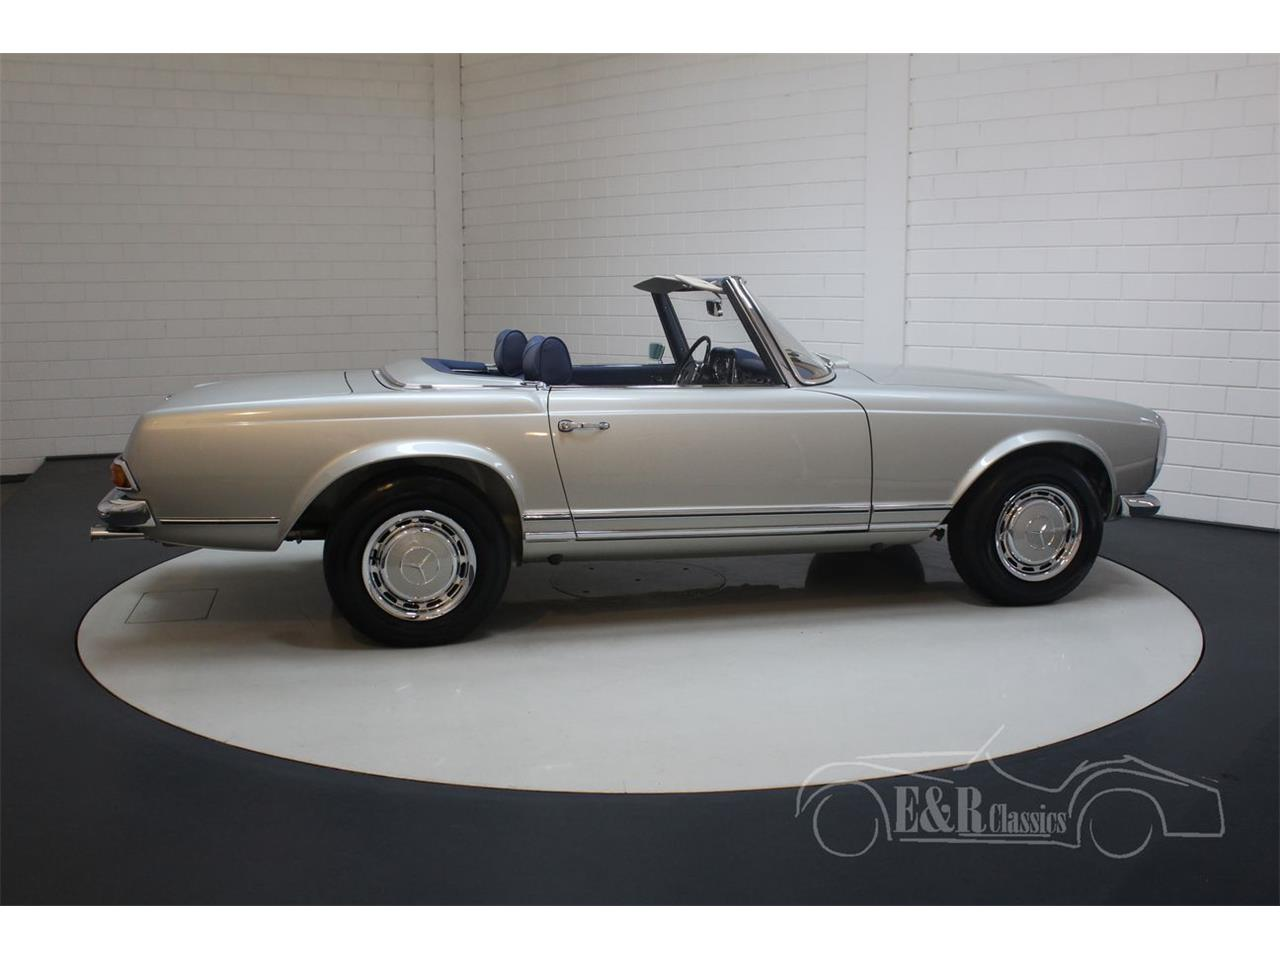 Large Picture of Classic 1969 Mercedes-Benz 280SL located in noord brabant - $190,500.00 - Q9A0